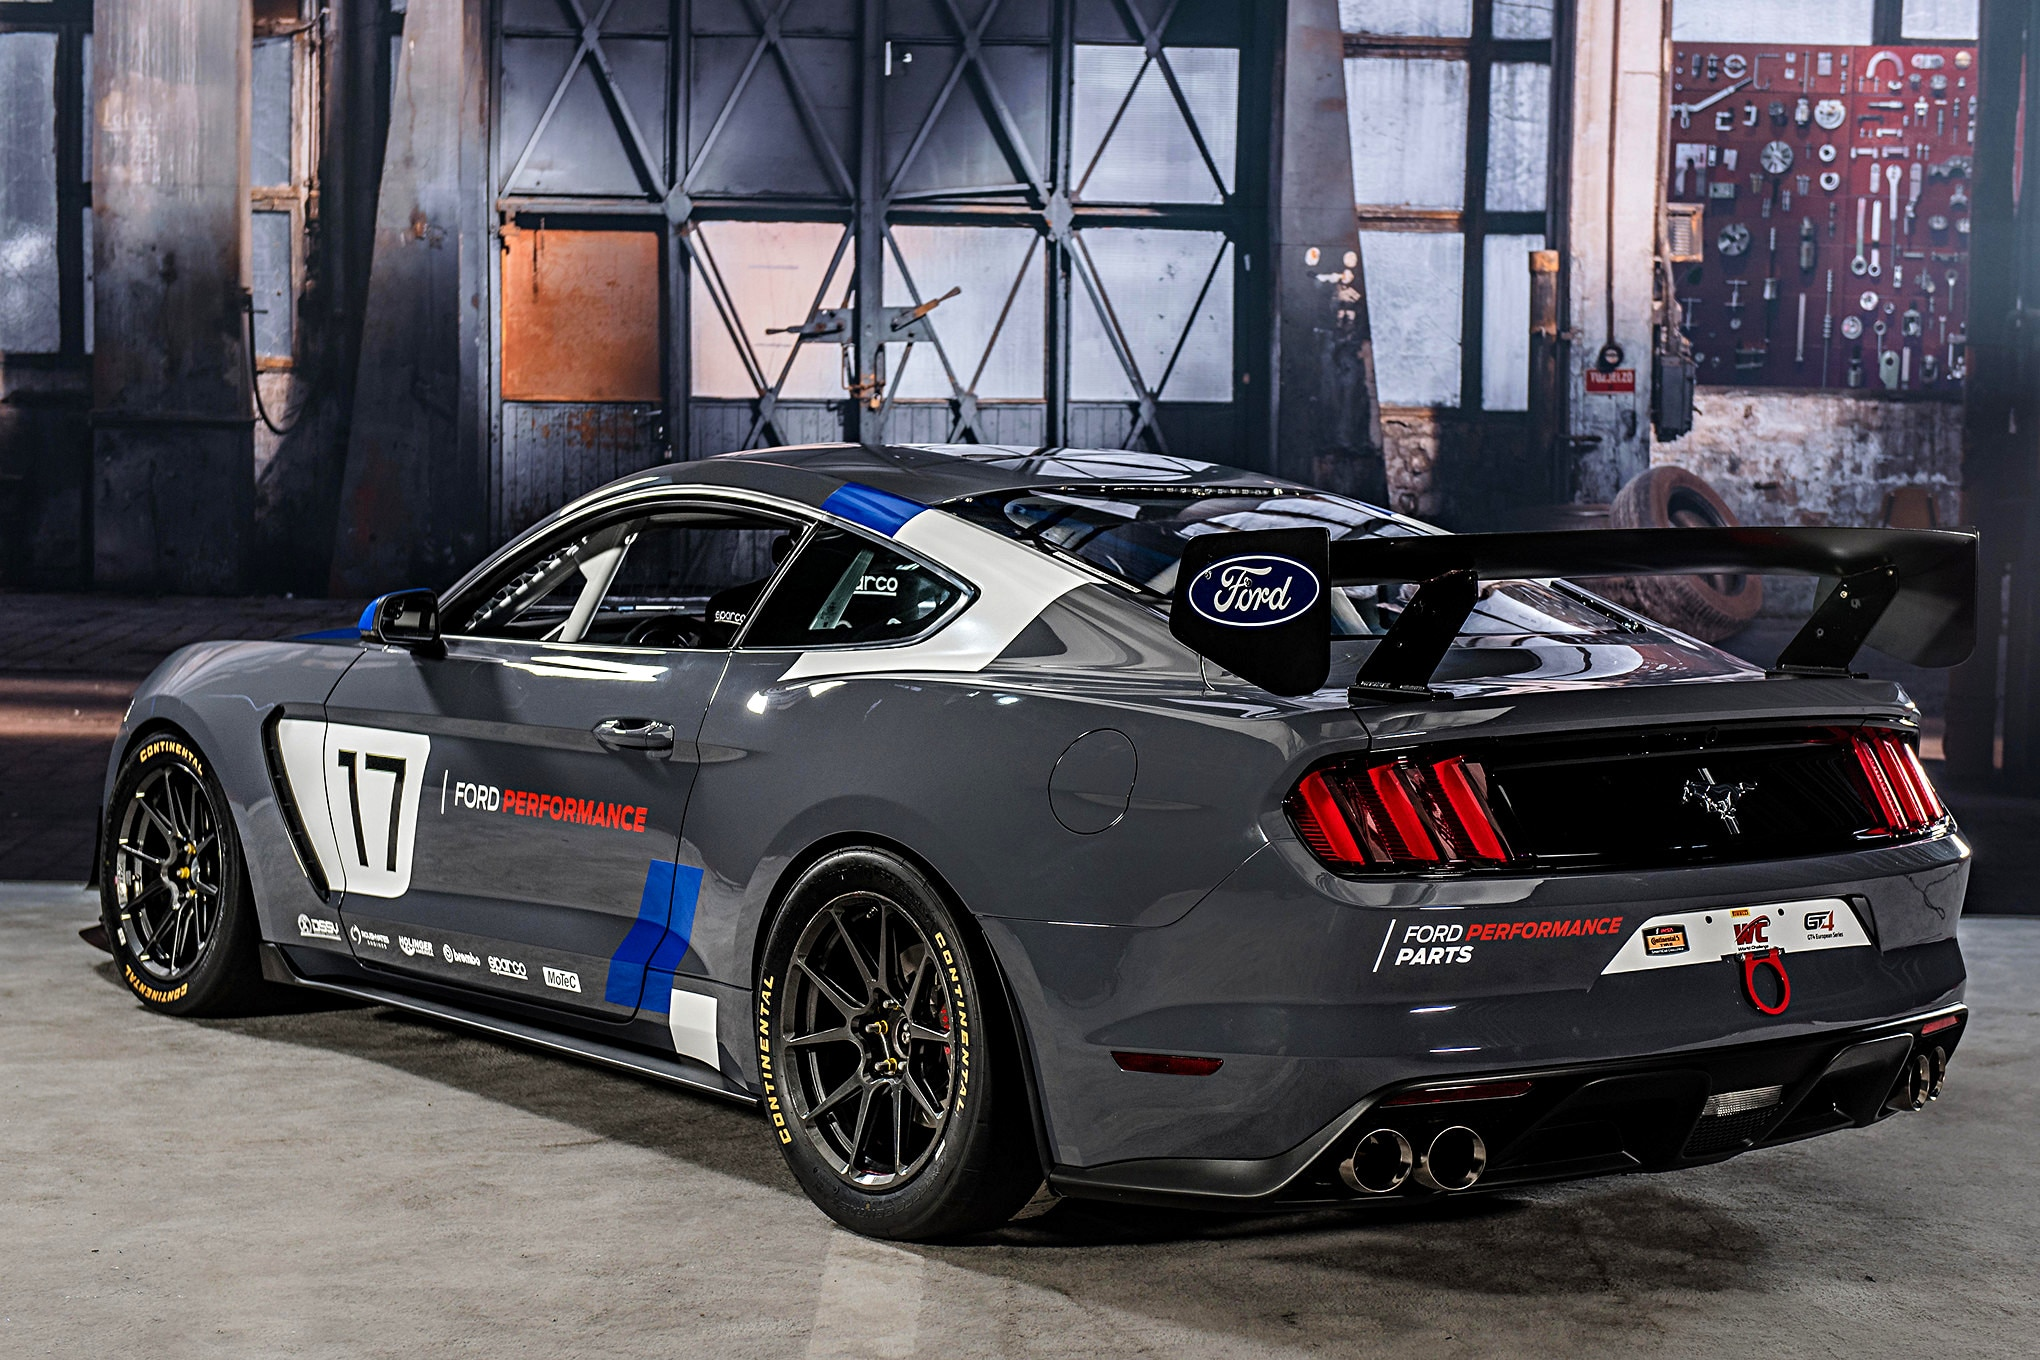 005 Ford Performance Tech Center